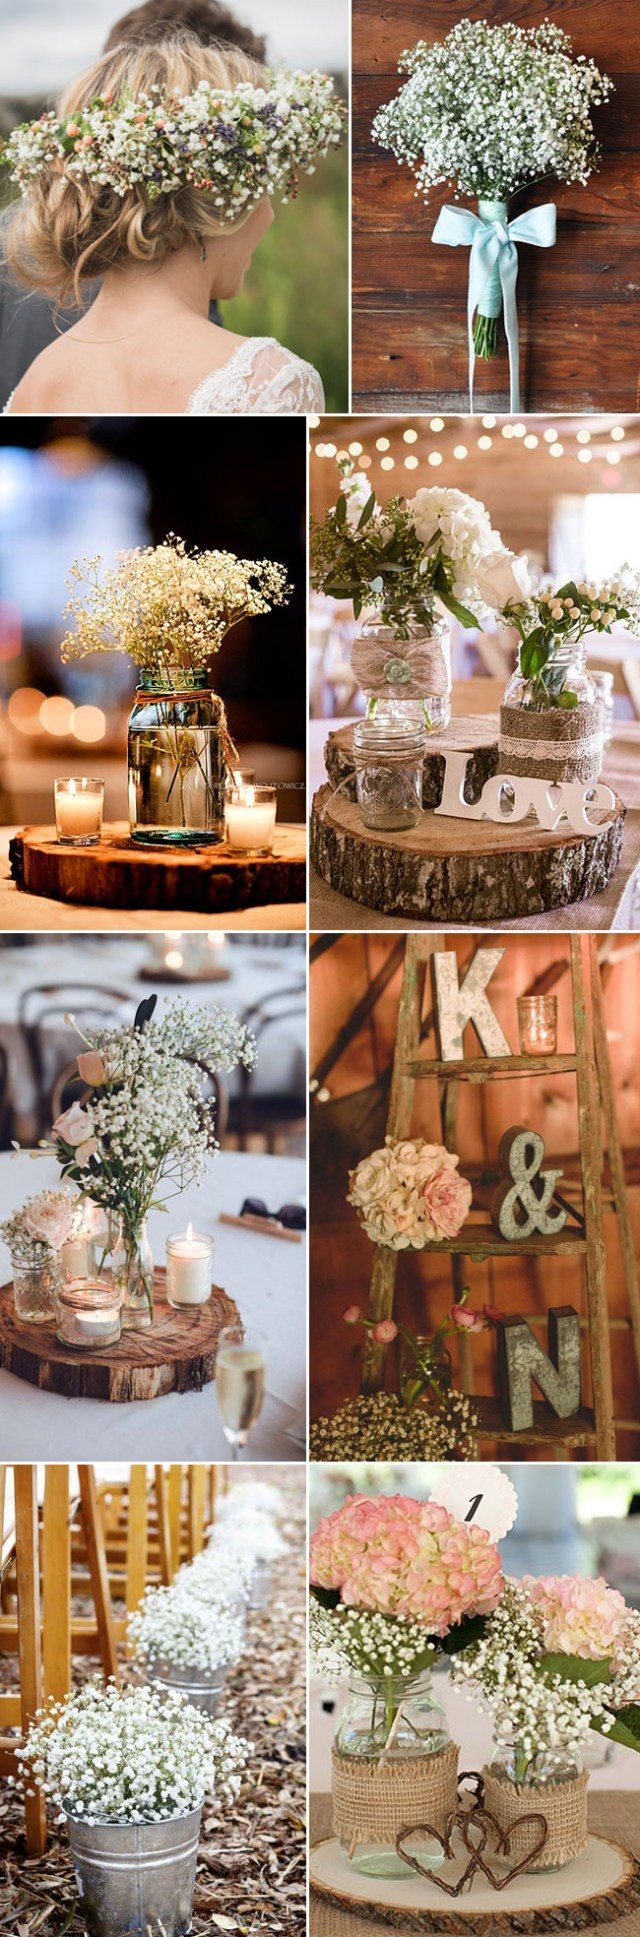 Barn Wedding Decor 50 Rustic Fall Barn Wedding Ideas That Will Take Your Breath Away